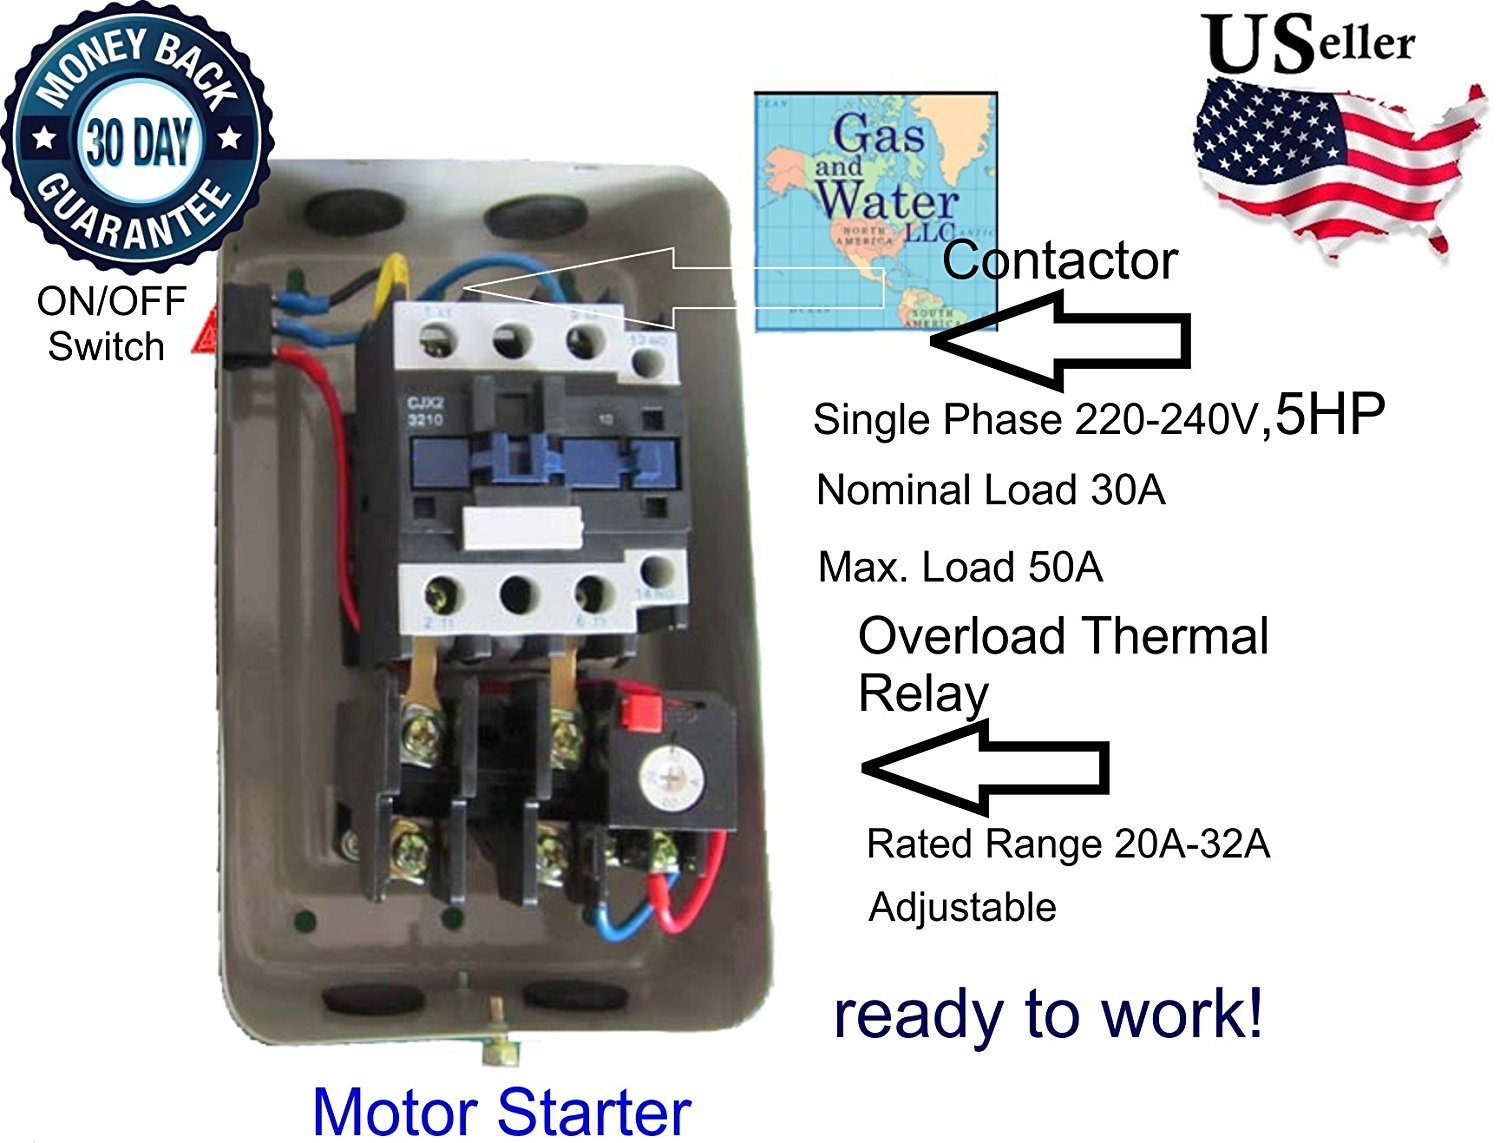 Magnetic Electric Motor Starter Control 5 Hp Single Phase 220 240v Dayton Solid State Relay Wiring Diagram 22 34a With On Off Switch Box Protection